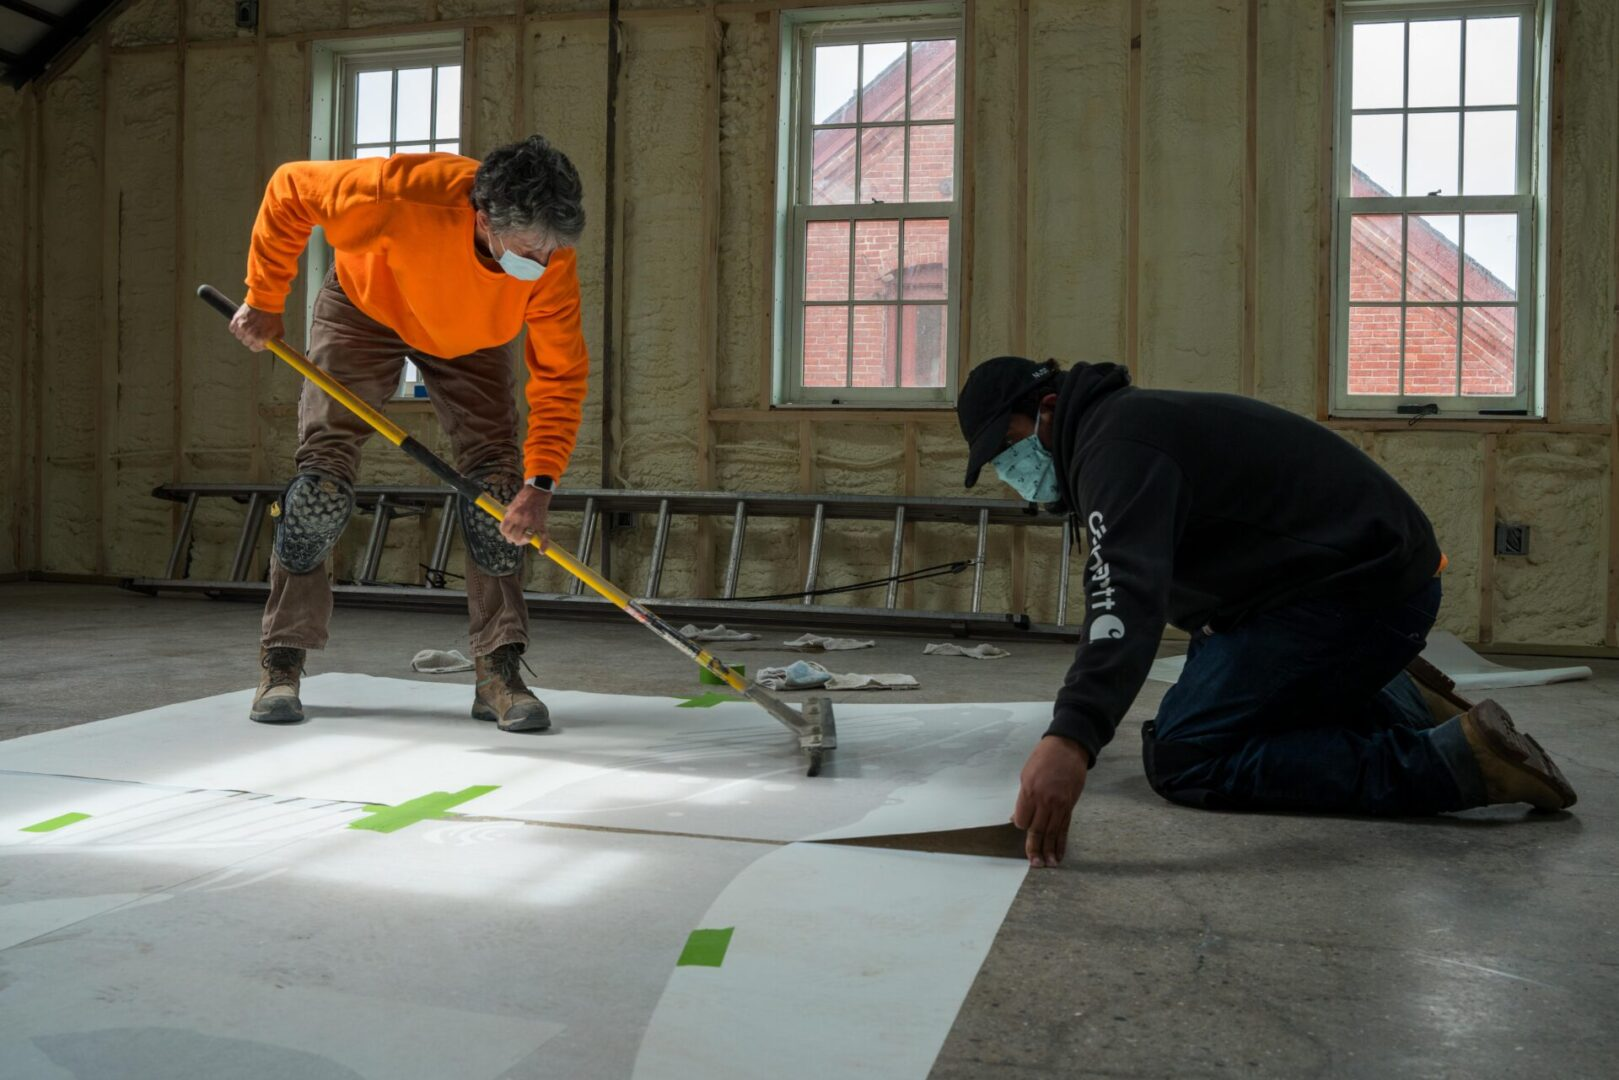 Laying down the stencil for Ocean Aliance. Members of Reliance Concrete & Floormaps lay the stencil